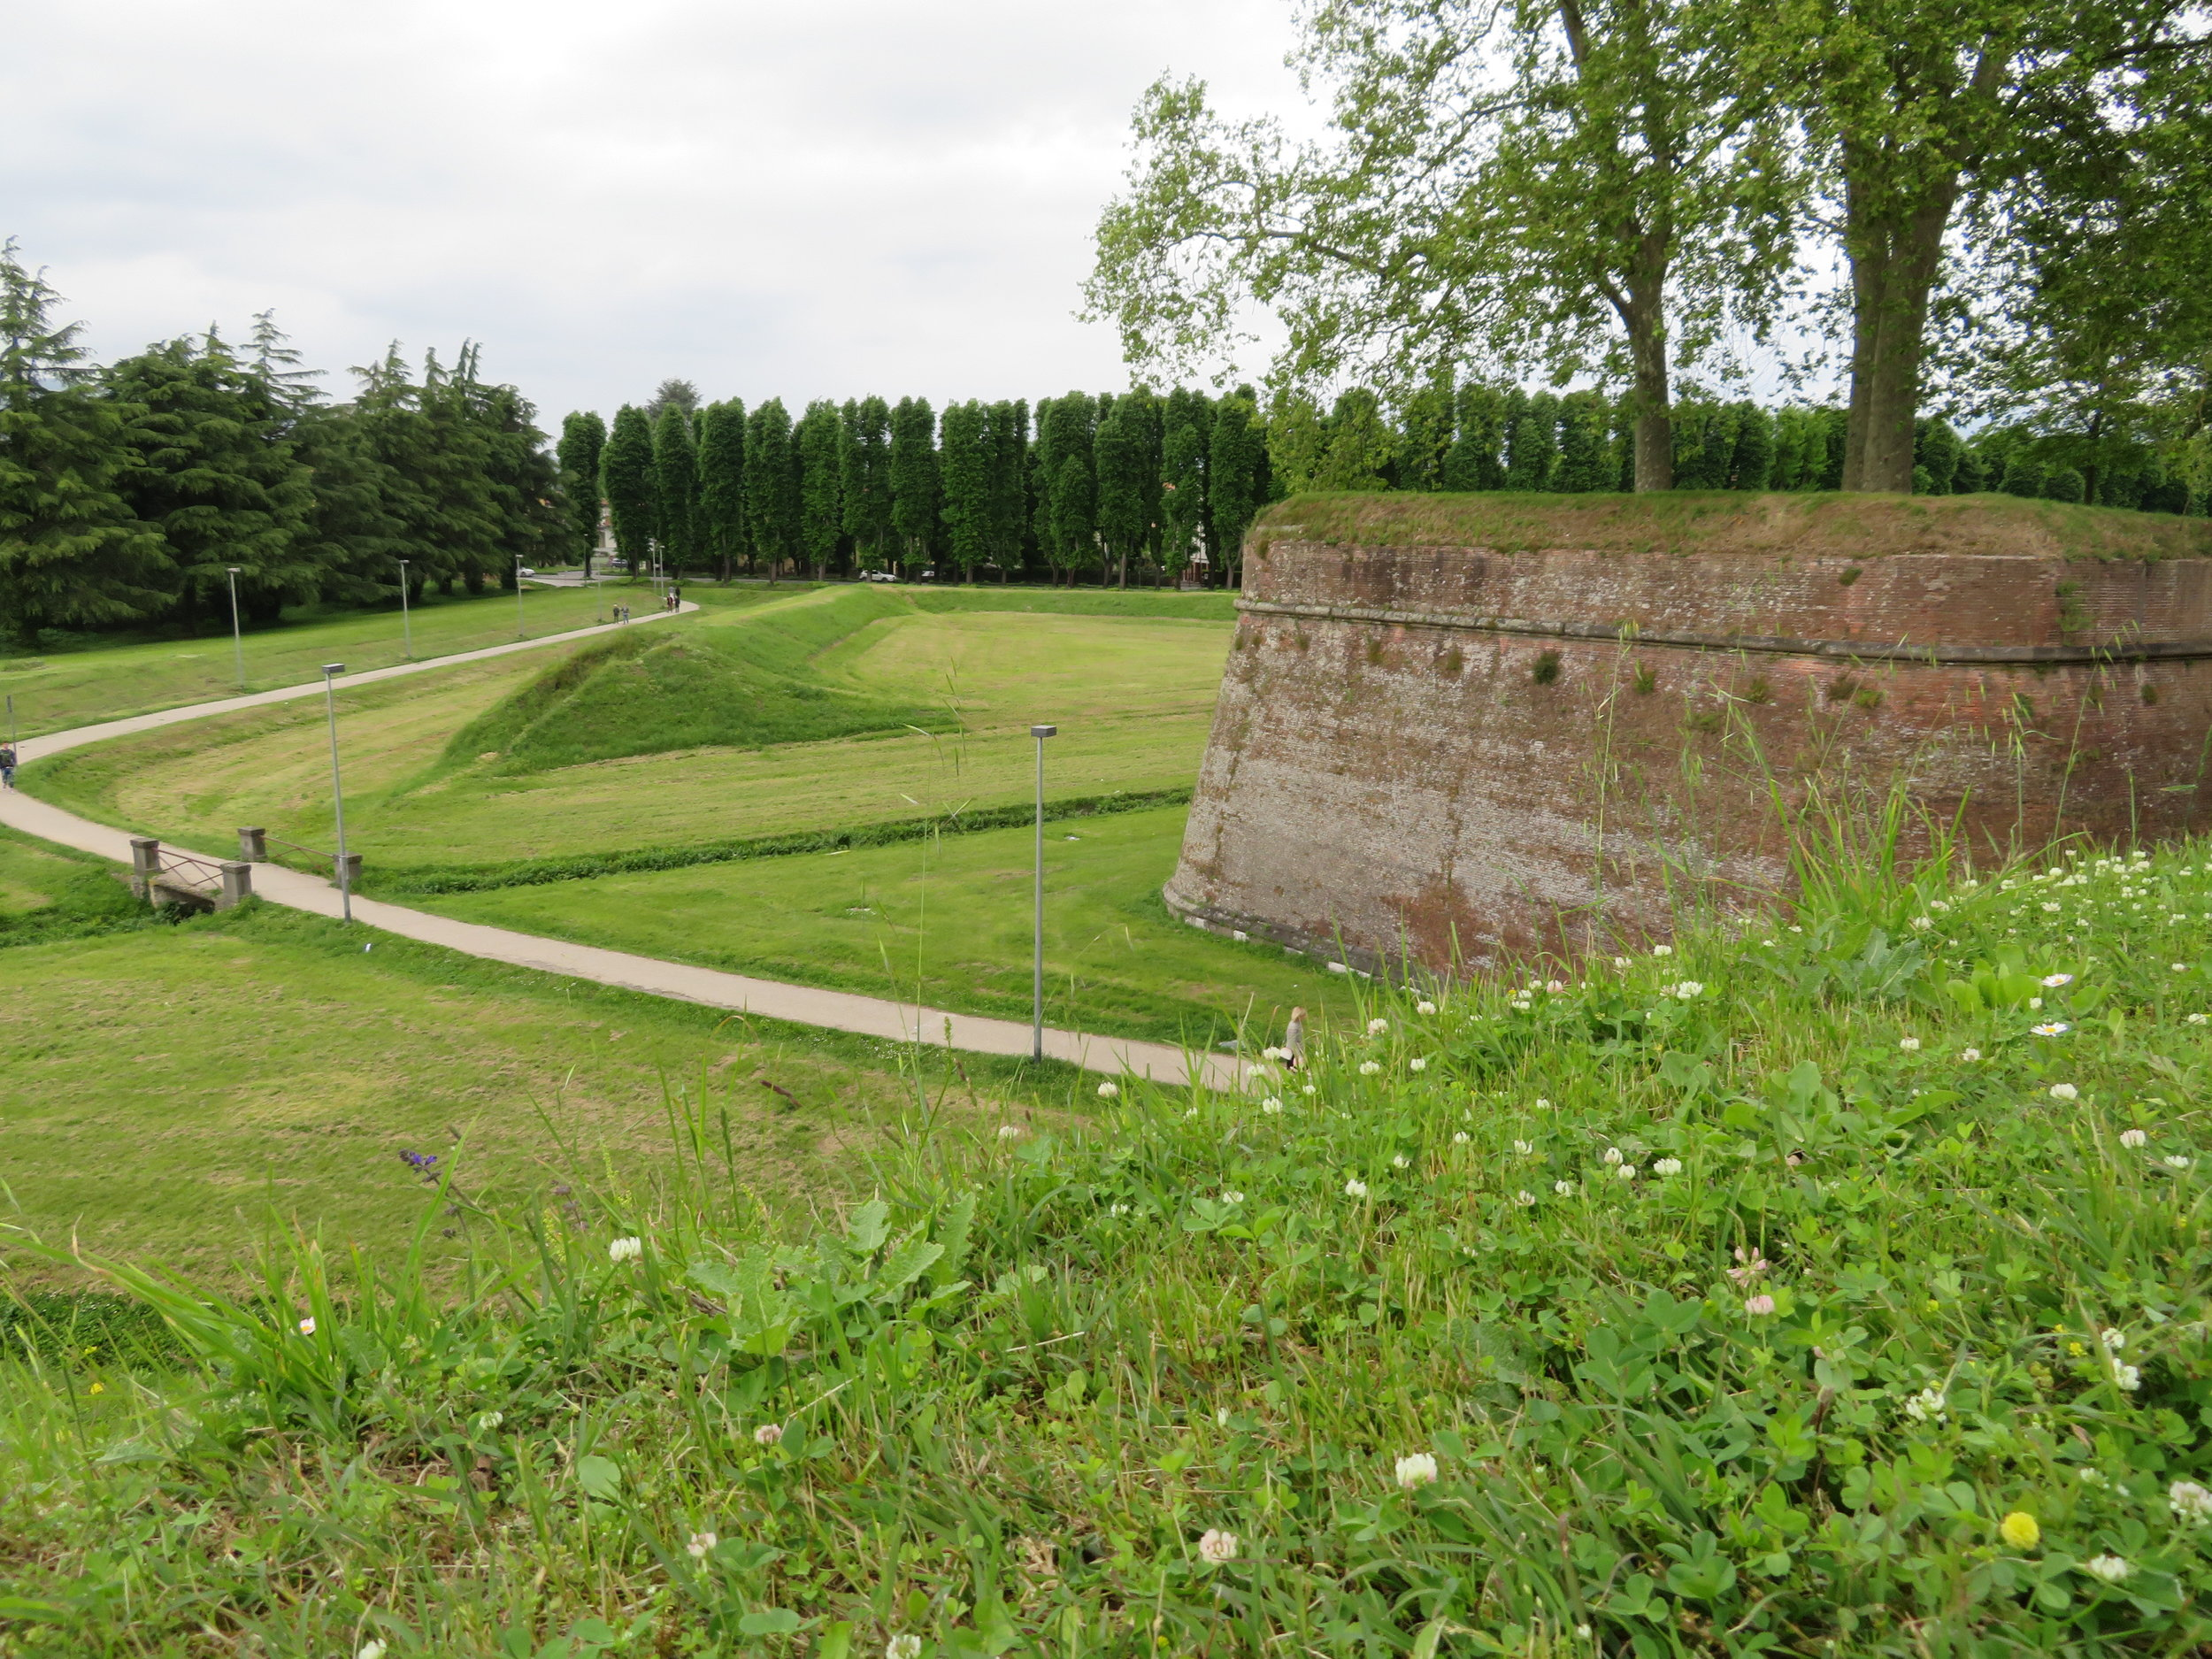 2.5 miles of intact medieval walls